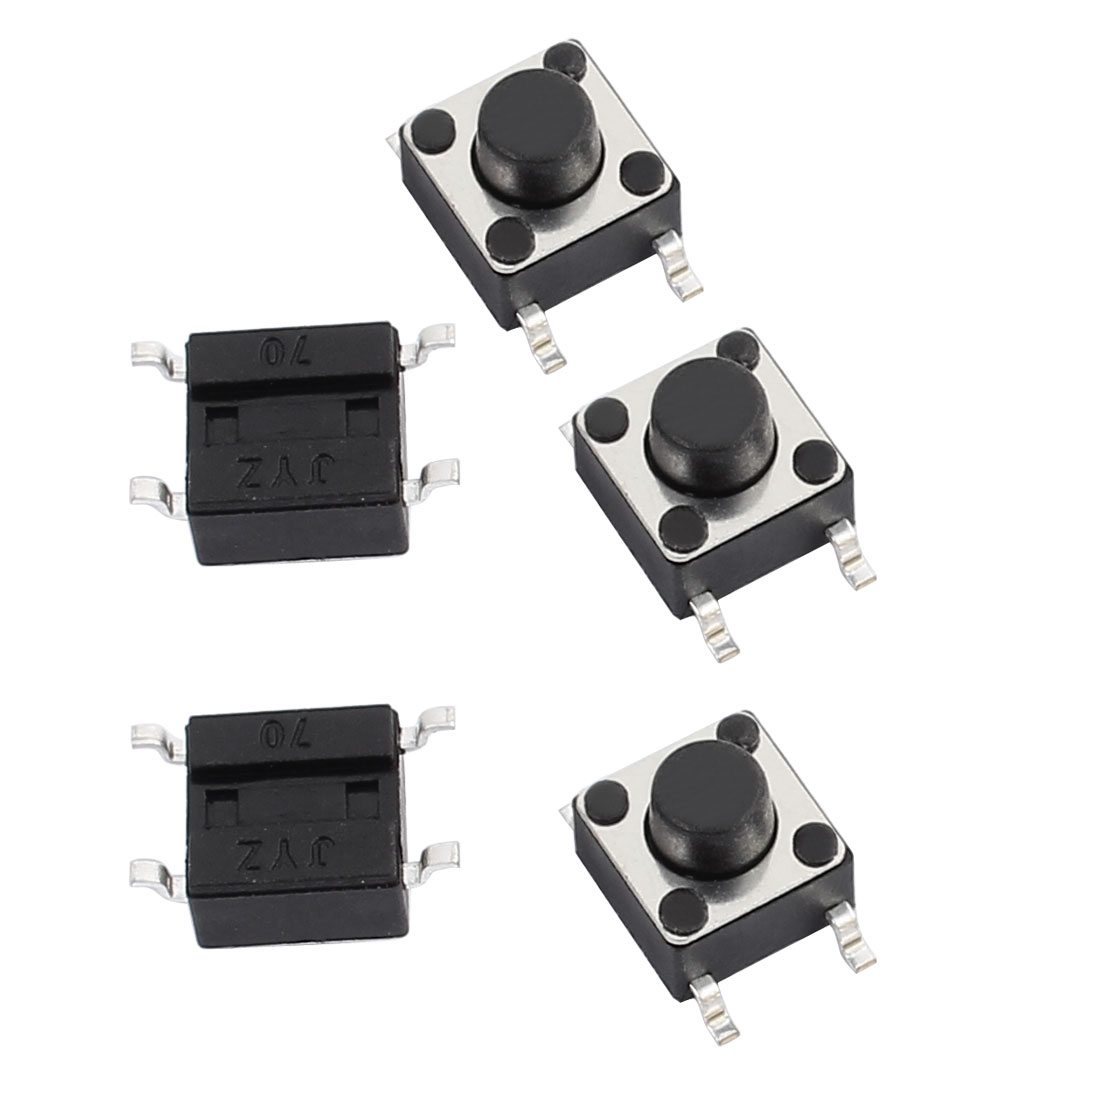 5 Pcs 6mmx6mmx3.5mm Panel PCB Momentary Tactile Tact Push Button Switch